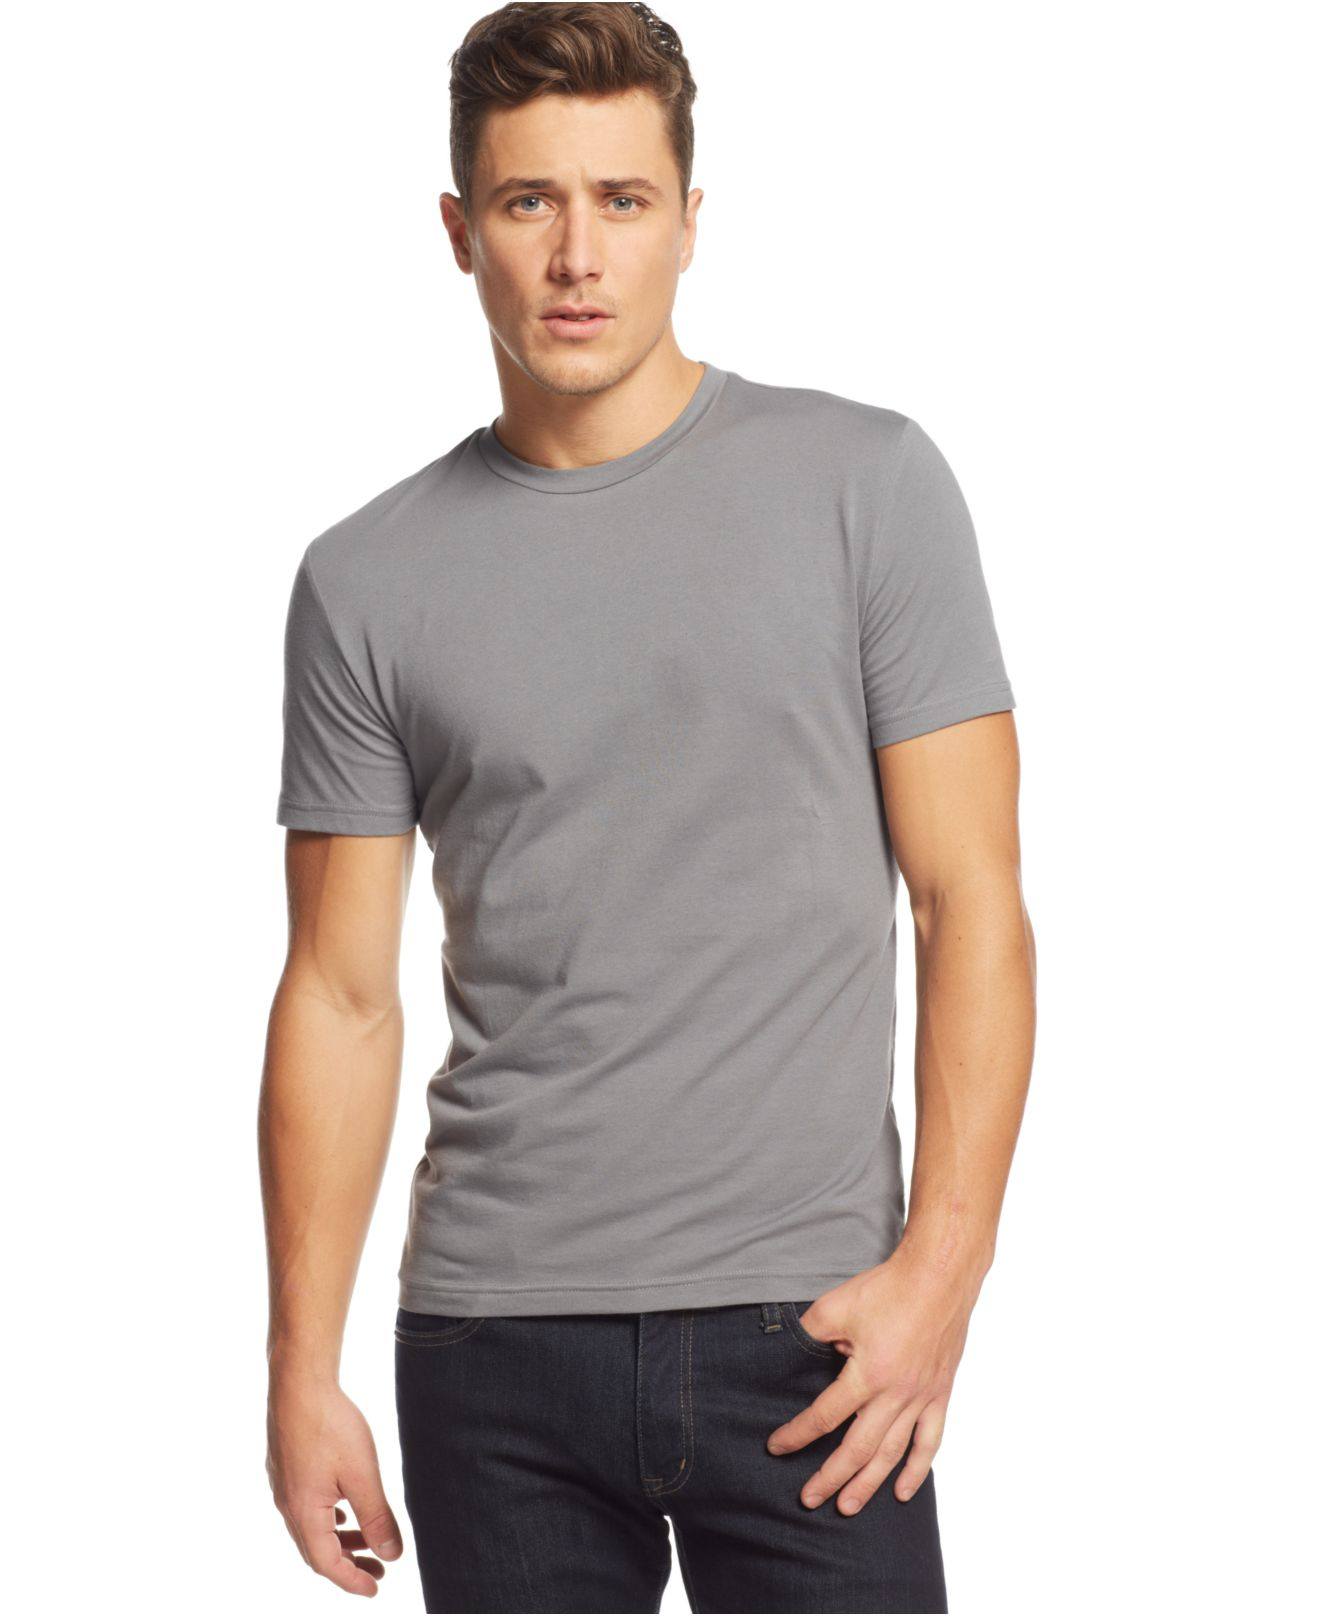 d295973eeb0 Lyst - Alfani Red Slim-fit Crewneck T-shirt in Gray for Men